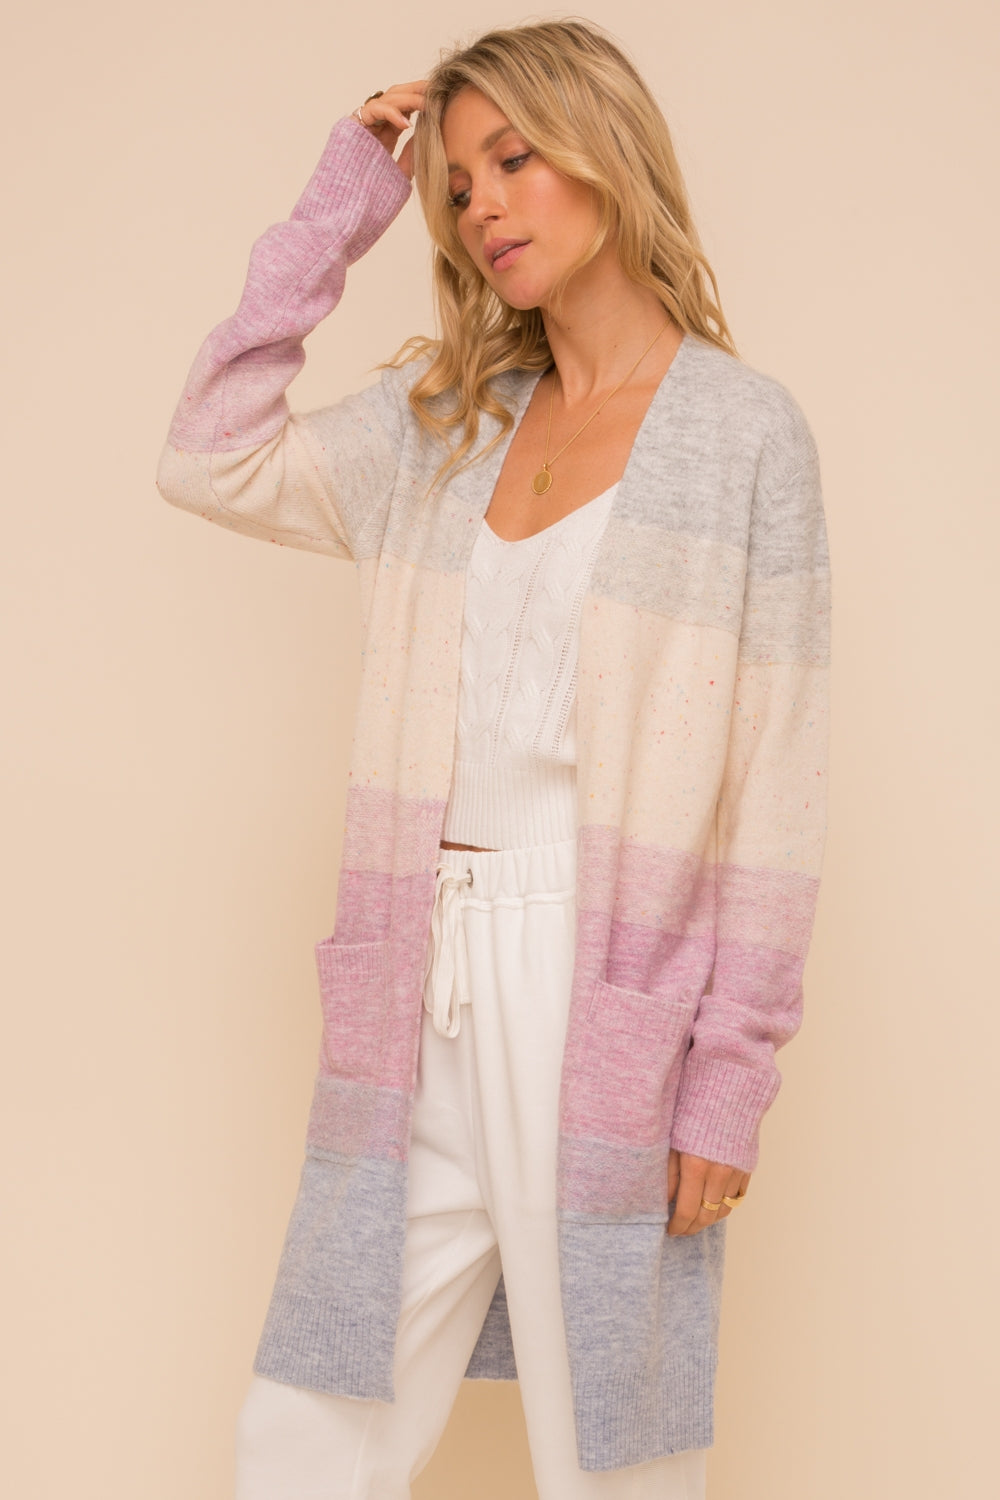 Multi-Color Fluffy Cardigan with Pockets - FrouFrou Couture